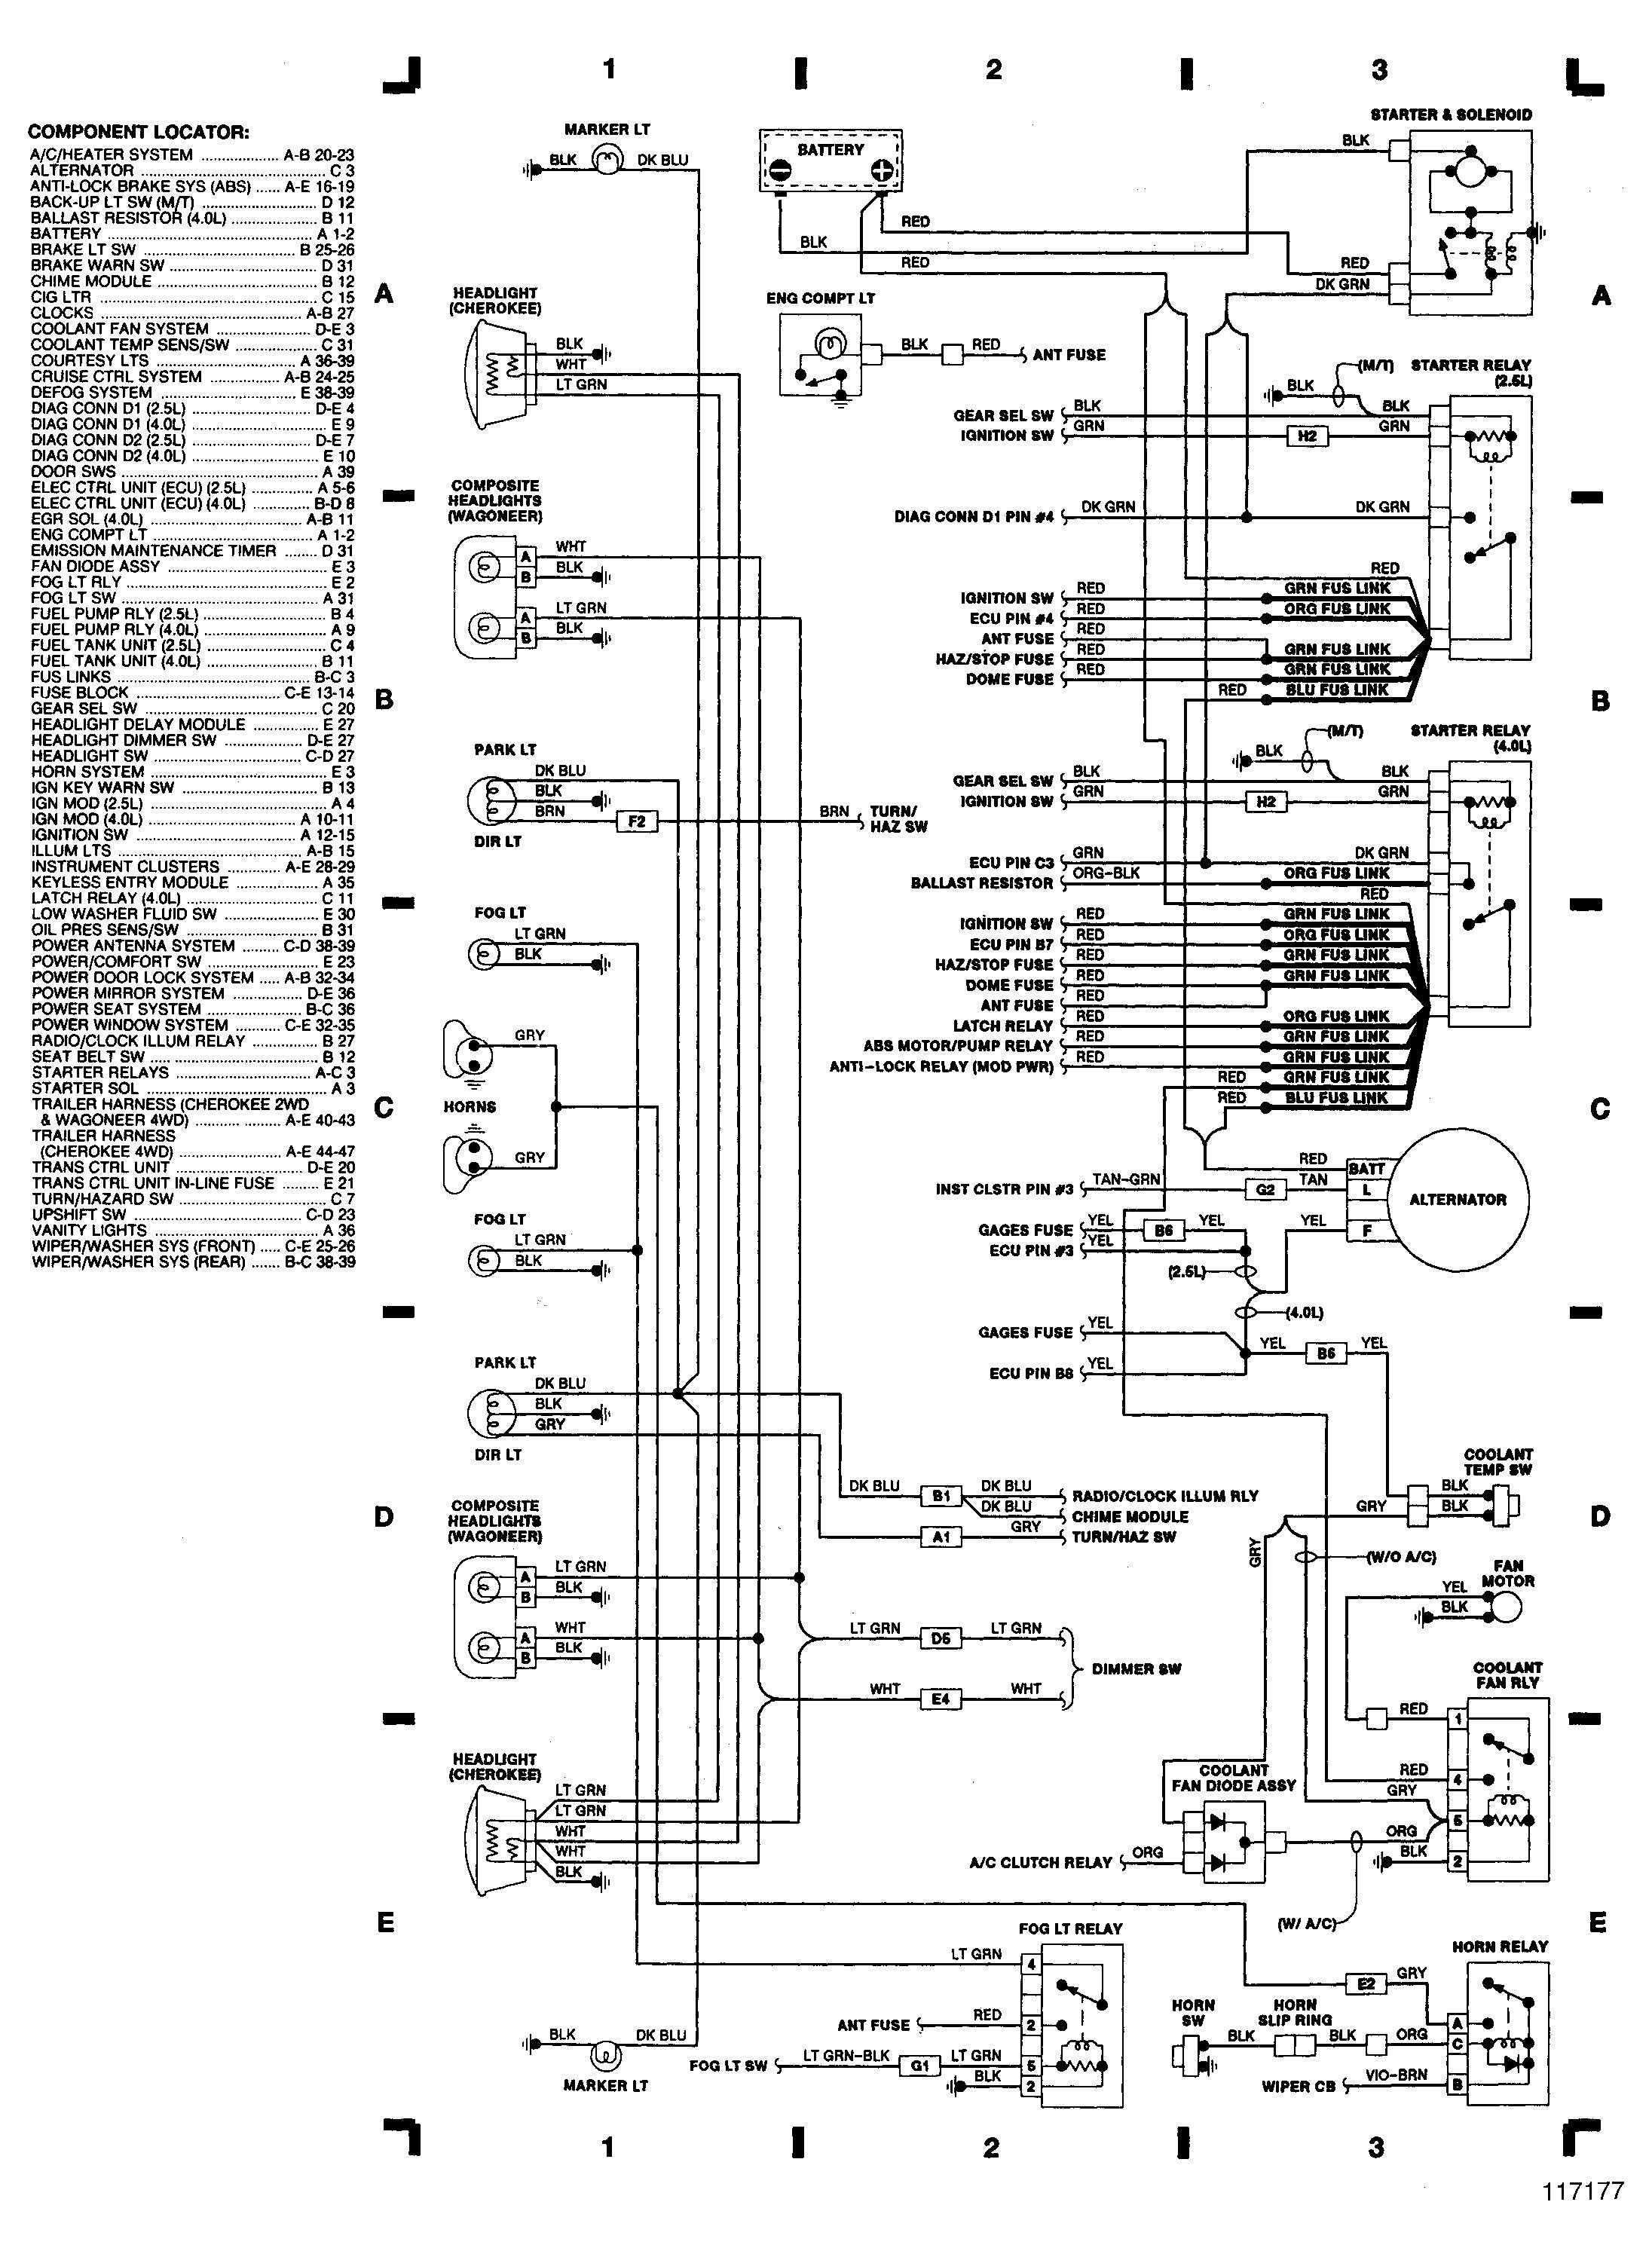 Awesome Wiring Diagram Jeep Grand Cherokee #diagrams #digramssample  #diagramimages #wiringdiagramsample #wiringdia… | Jeep grand cherokee, Jeep  cherokee, Jeep grand | 2005 Jeep Wrangler Automatic Transmission Diagram Wiring |  | Pinterest